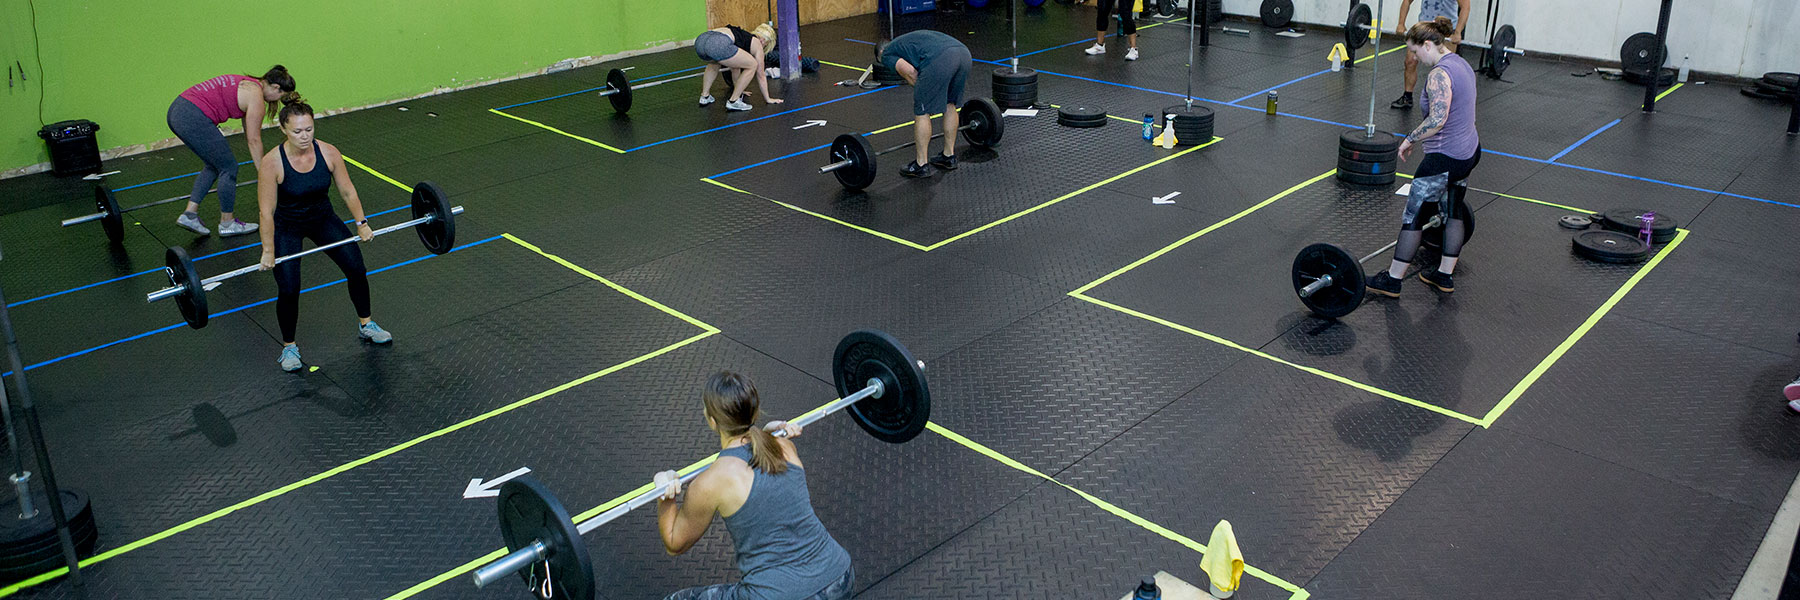 CrossFit Iron Refined class in Eagle River Alaska with socially distanced boxes.